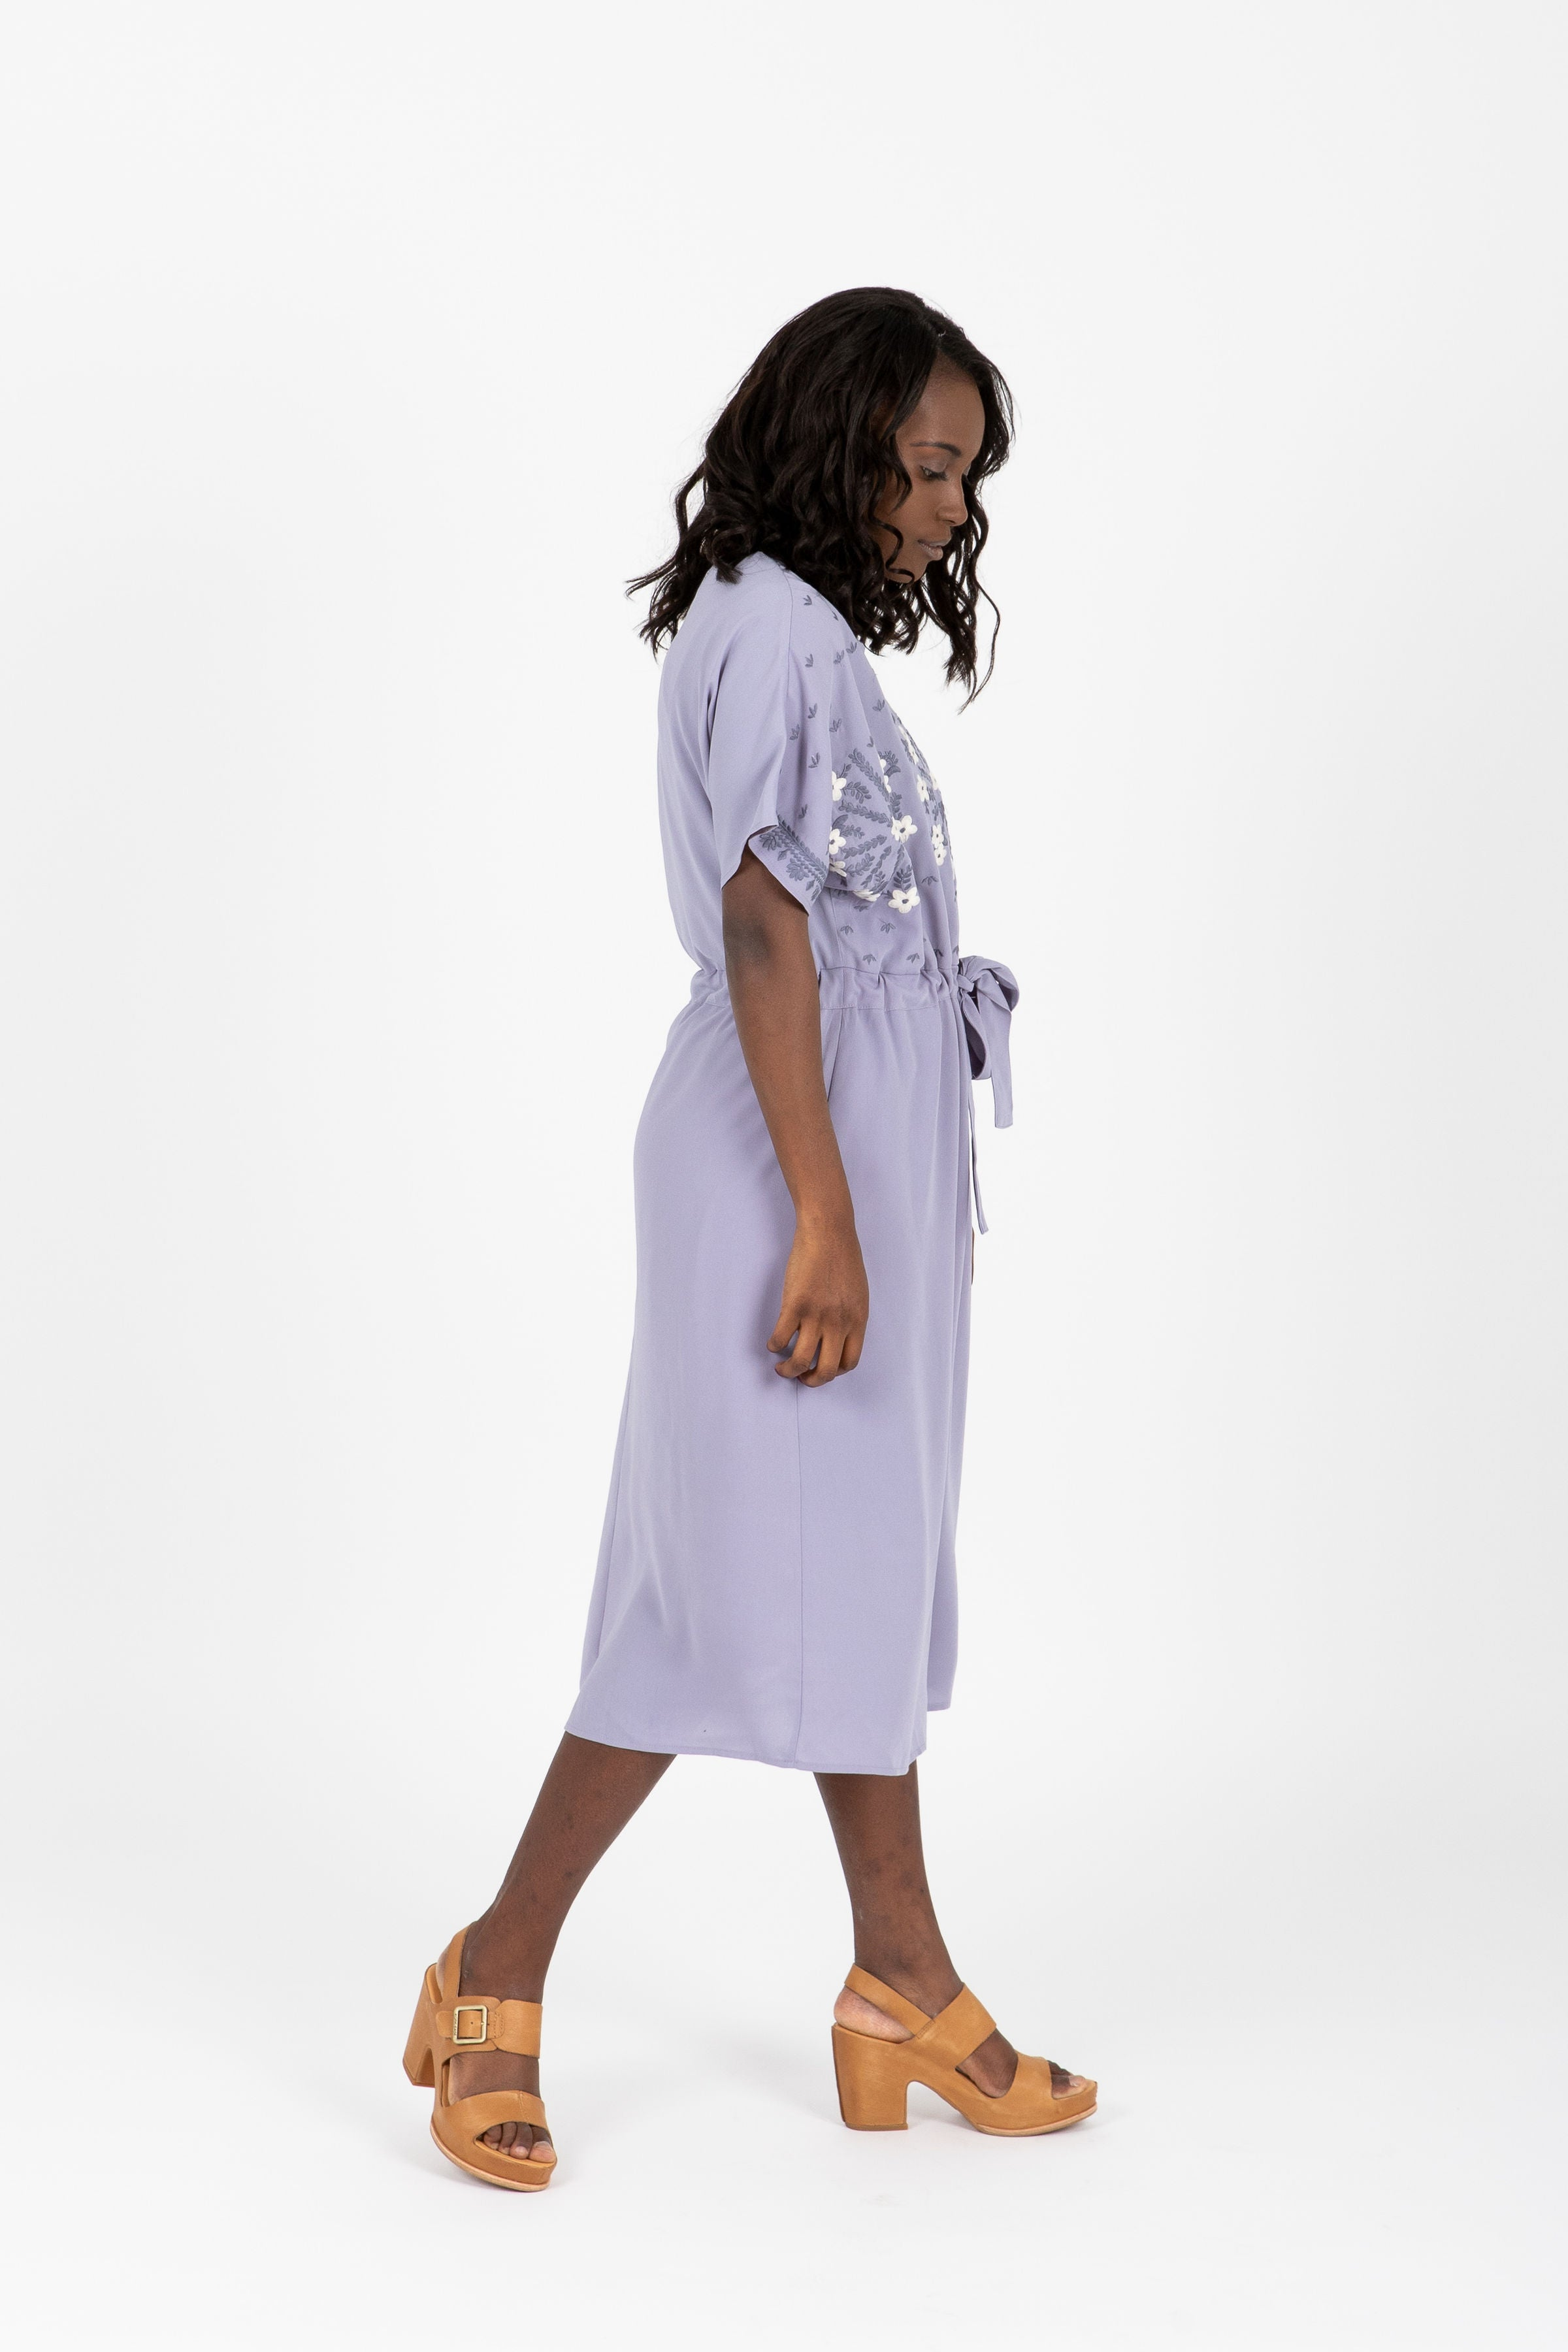 The Palina Embroidered Tie Dress in Lavender